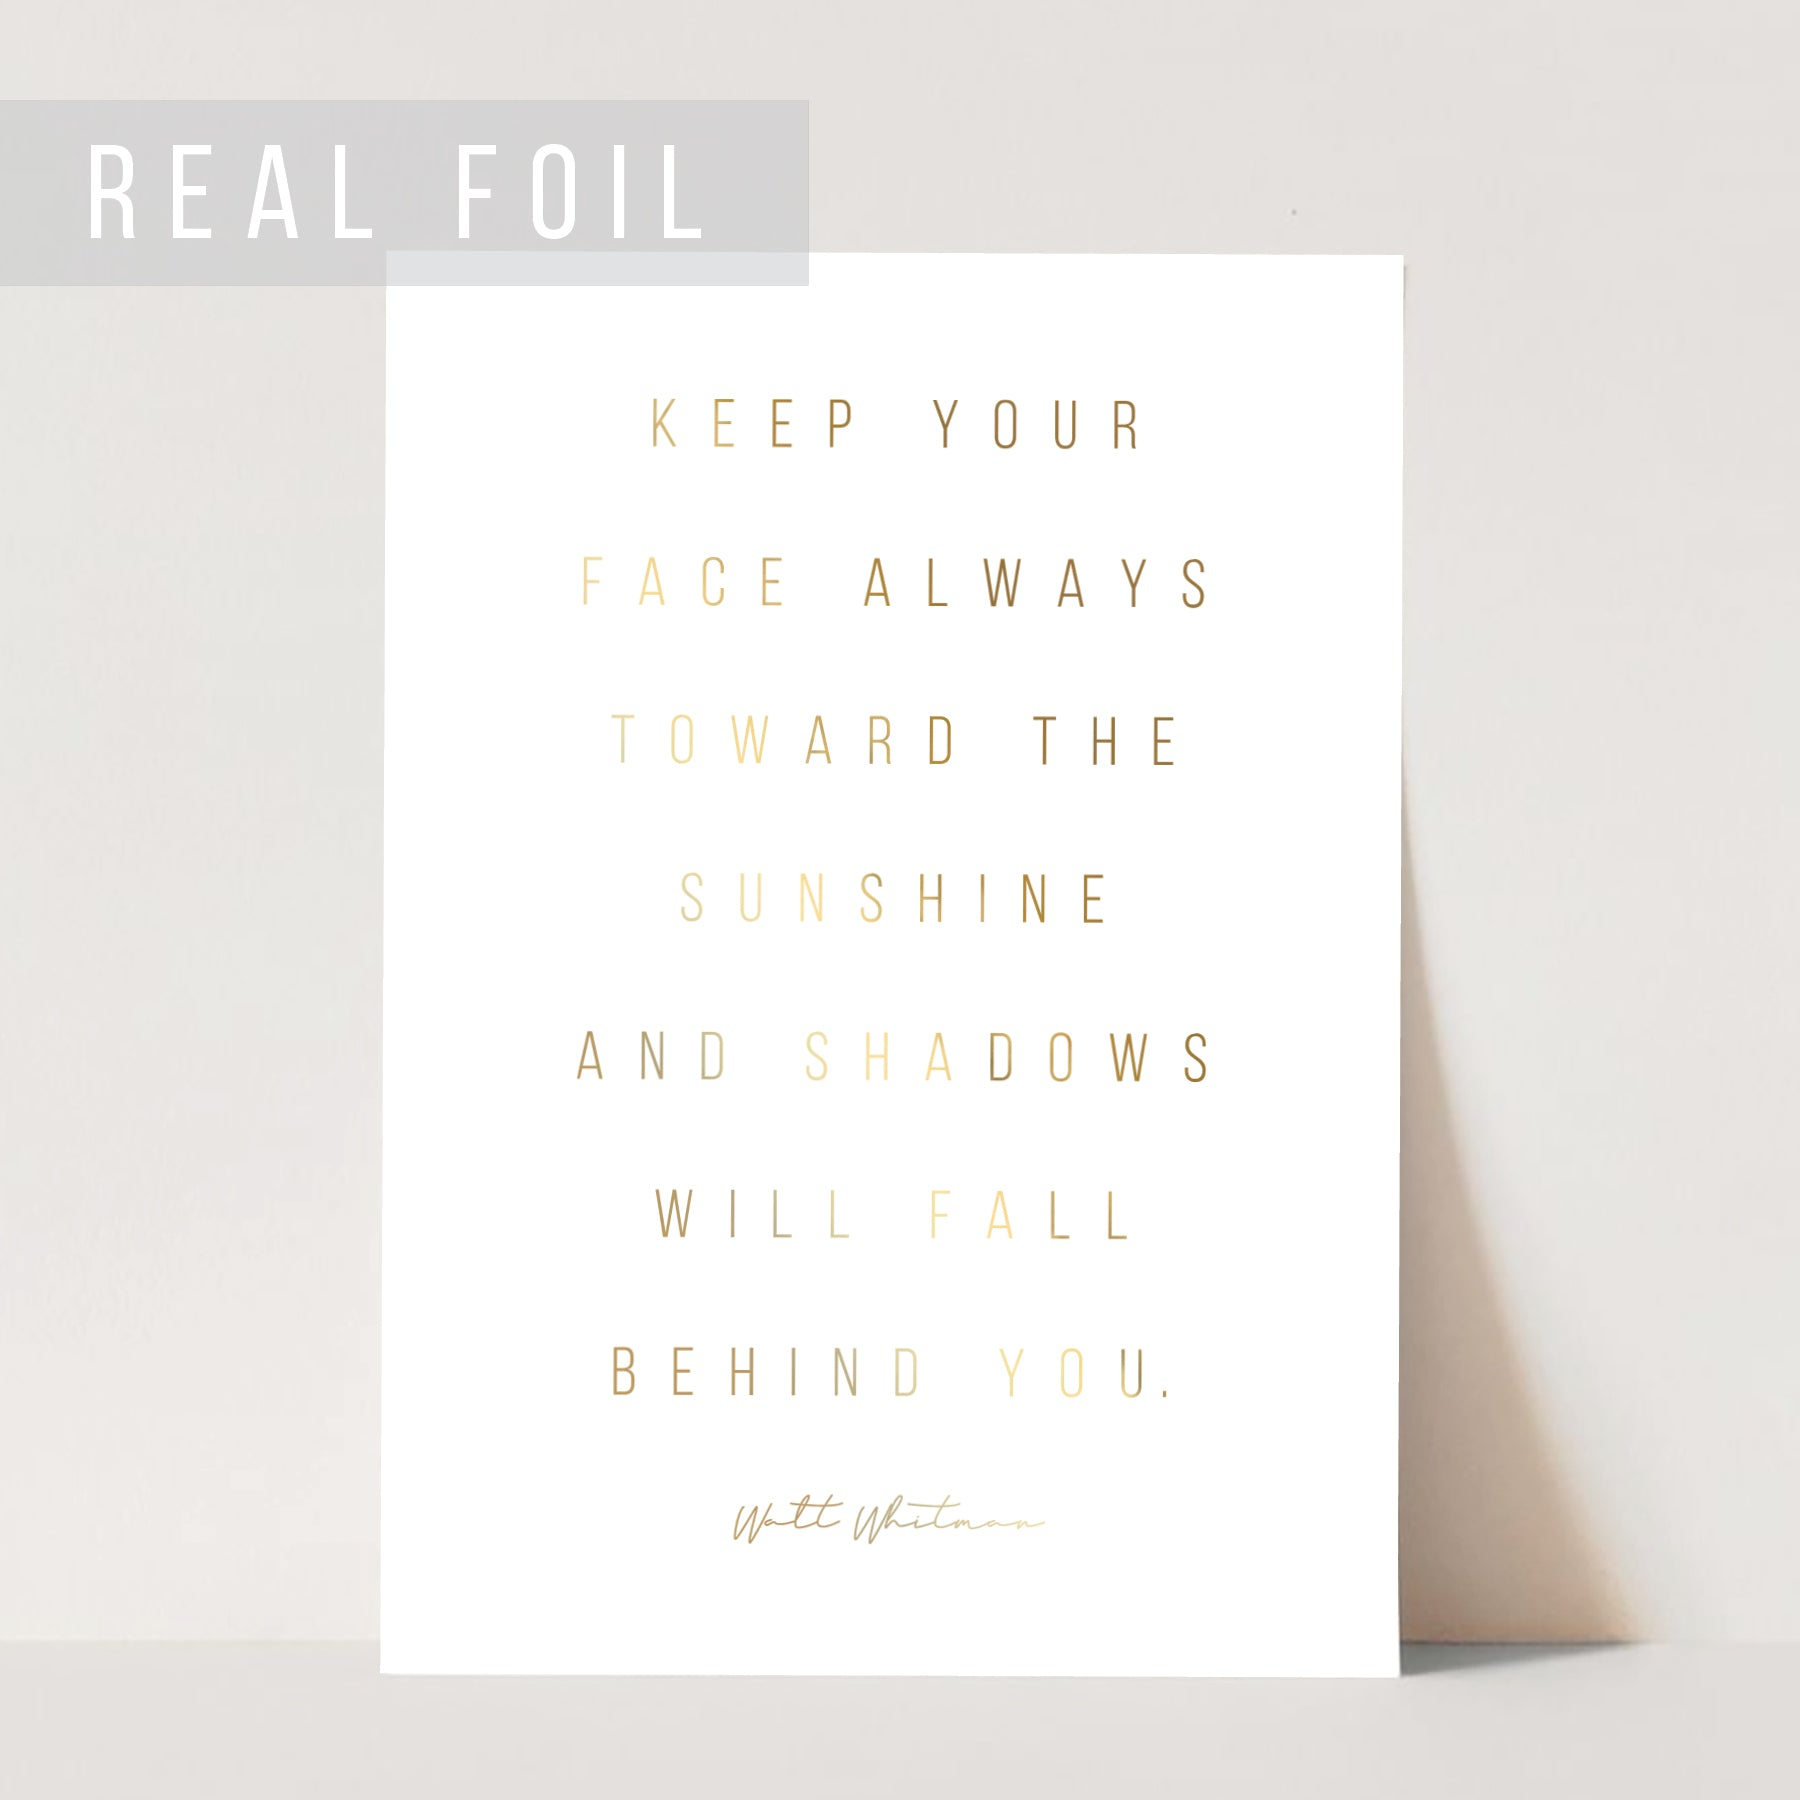 Keep Your Face Always Toward the Sunshine and the Shadows Will Fall Behind You. -Walt Whitman Quote Foiled Art Print